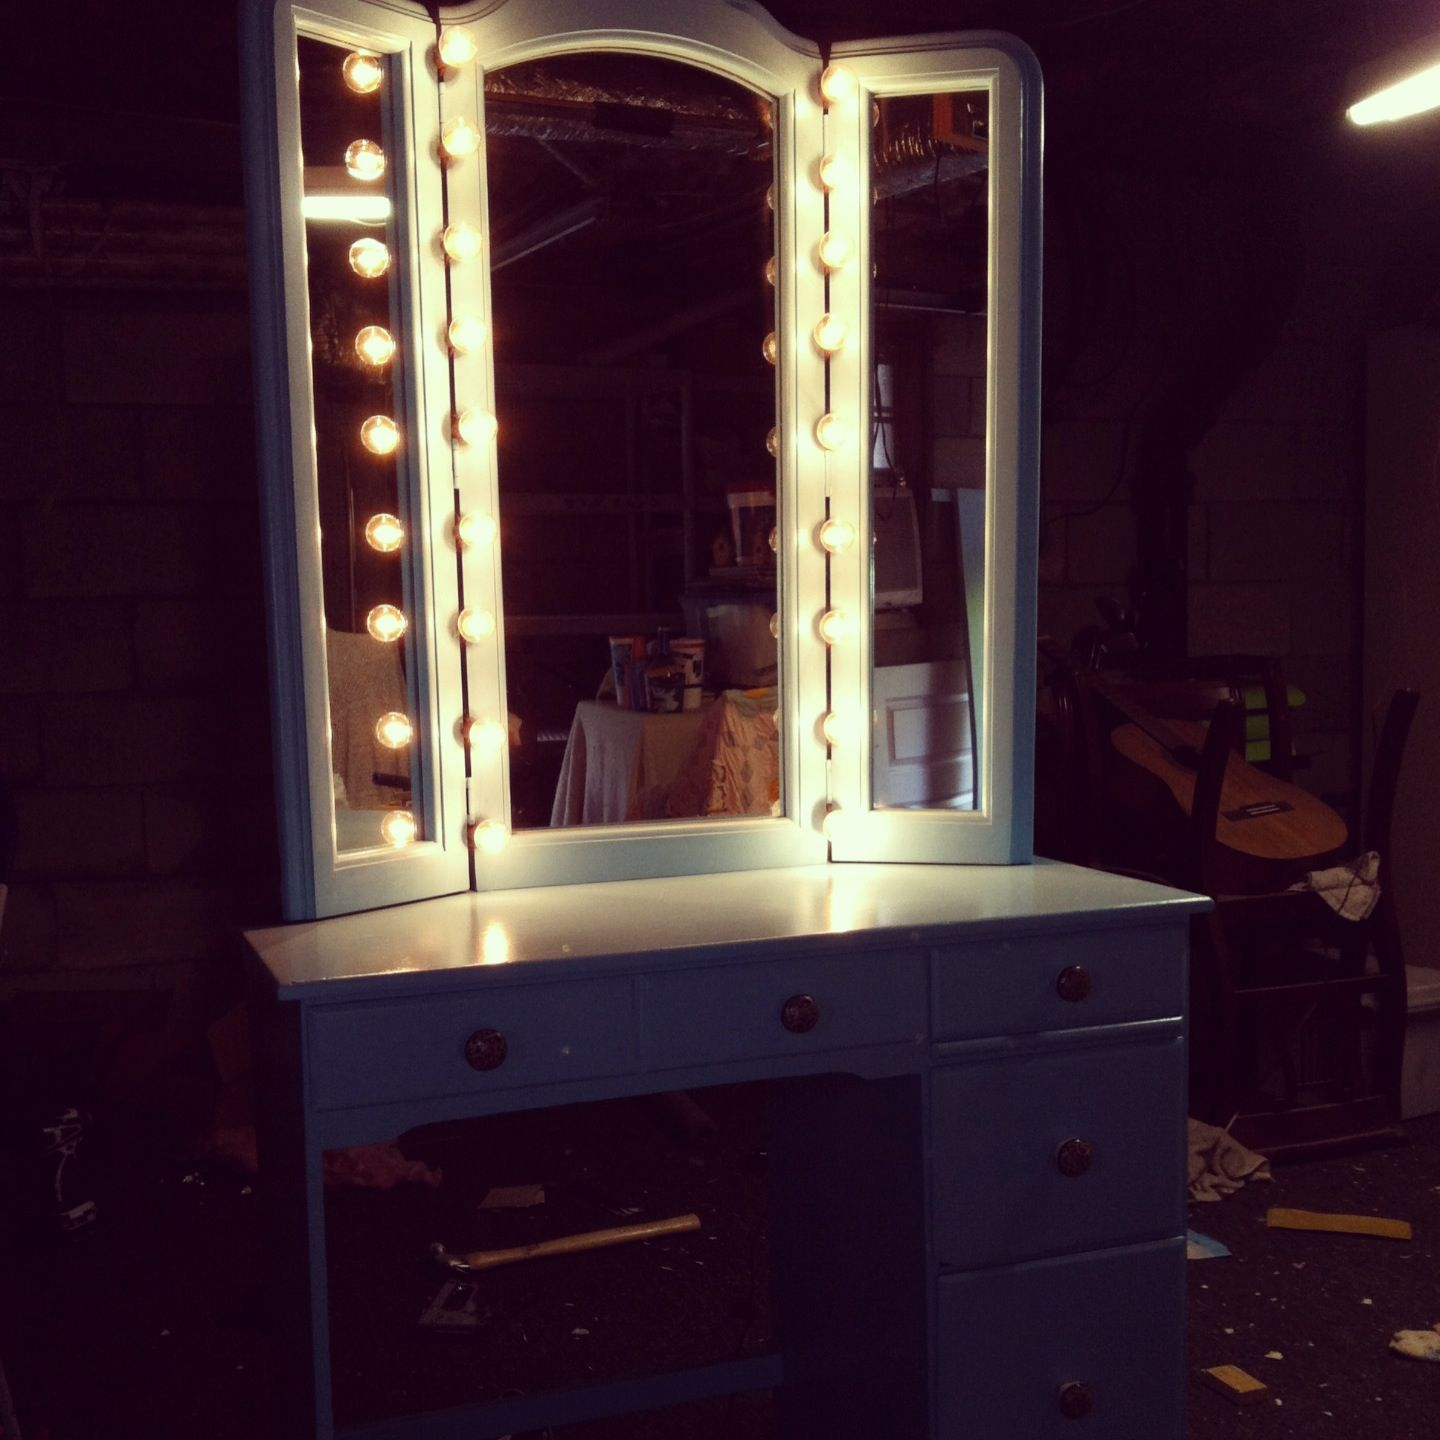 Homemade vanity old desk trifold mirror and outside twinkle